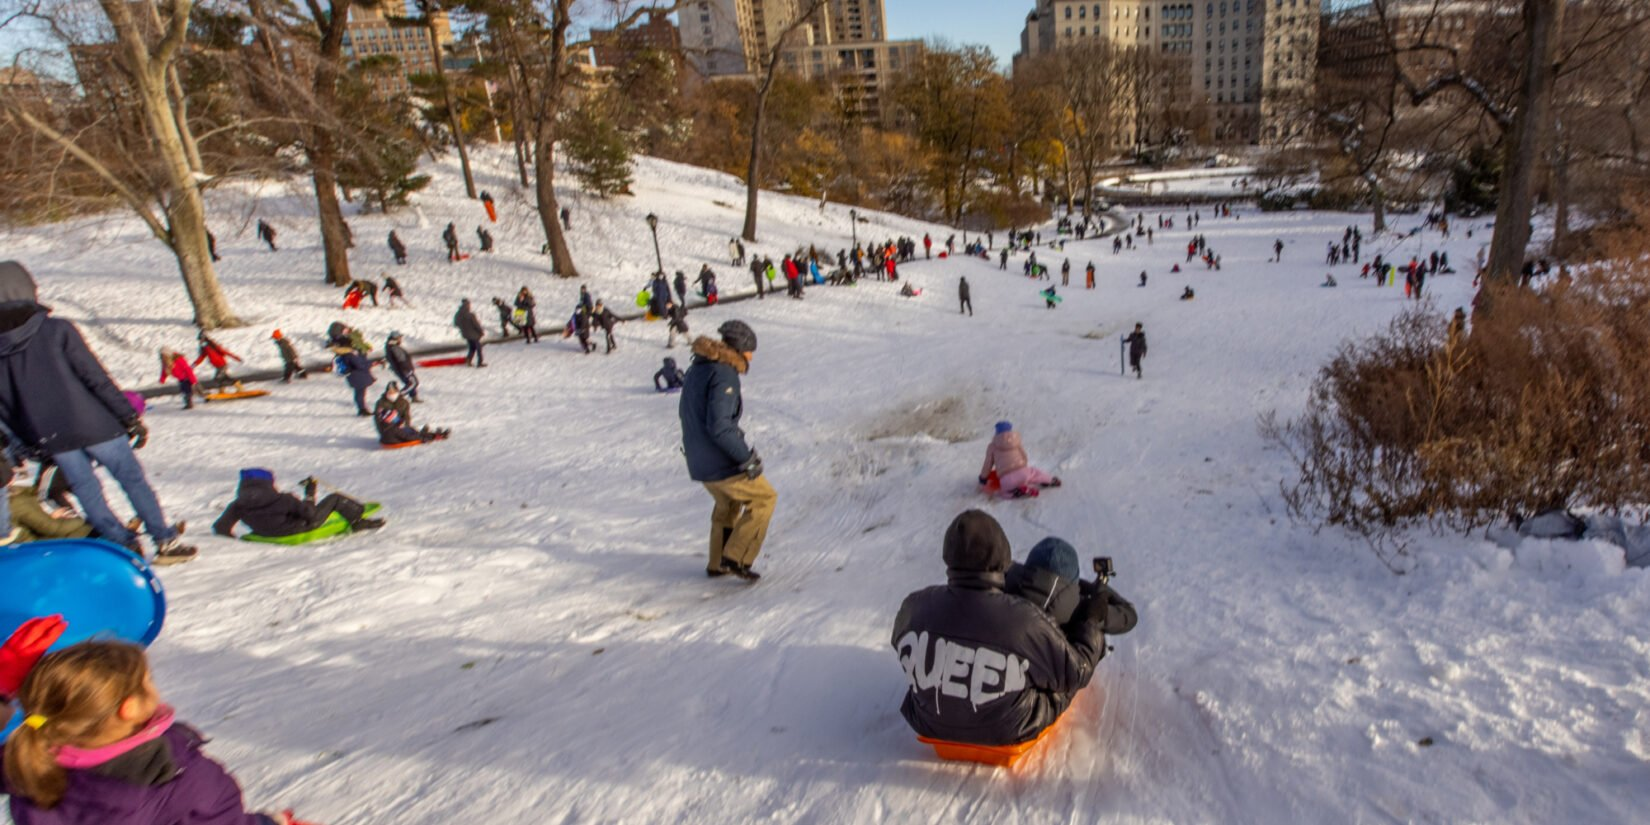 Kids of all ages enjoying sledding under a cold blue sky